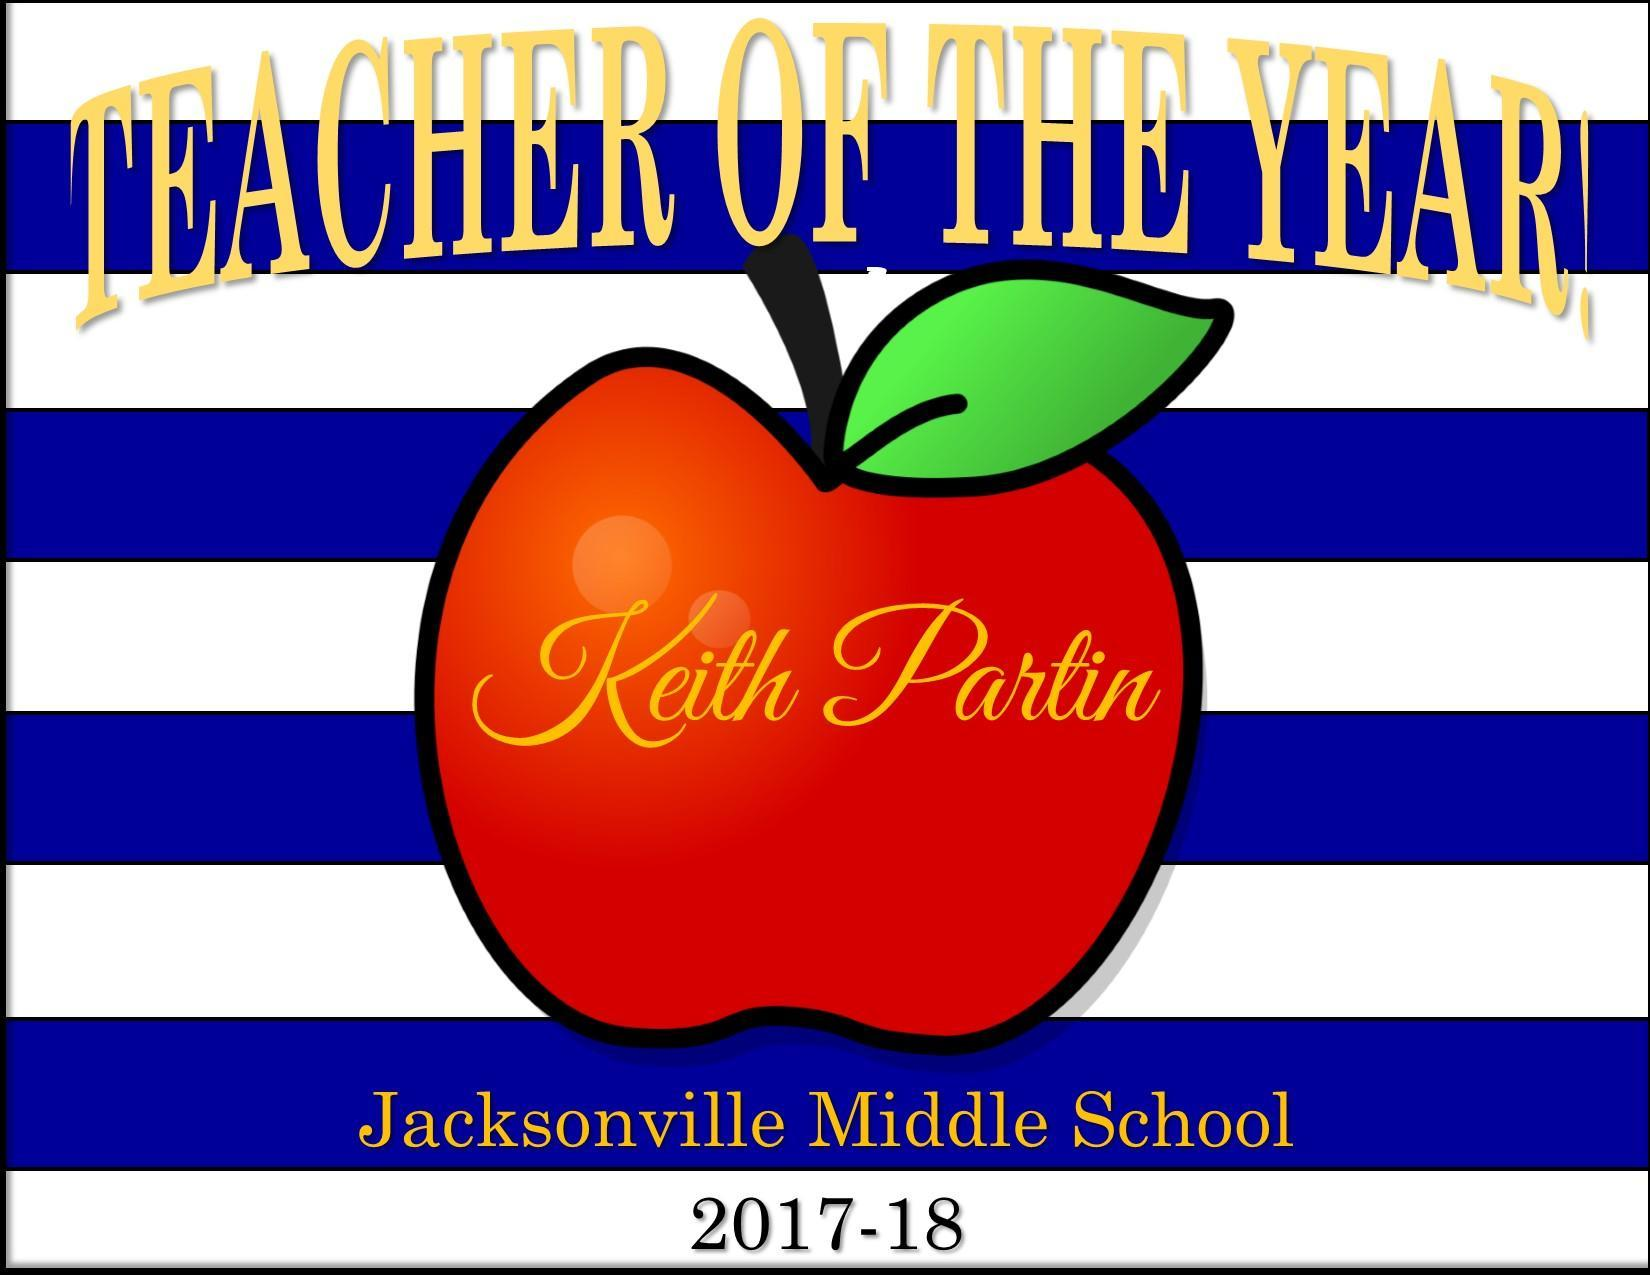 poster for JMS teacher of the Year Keith PArtin